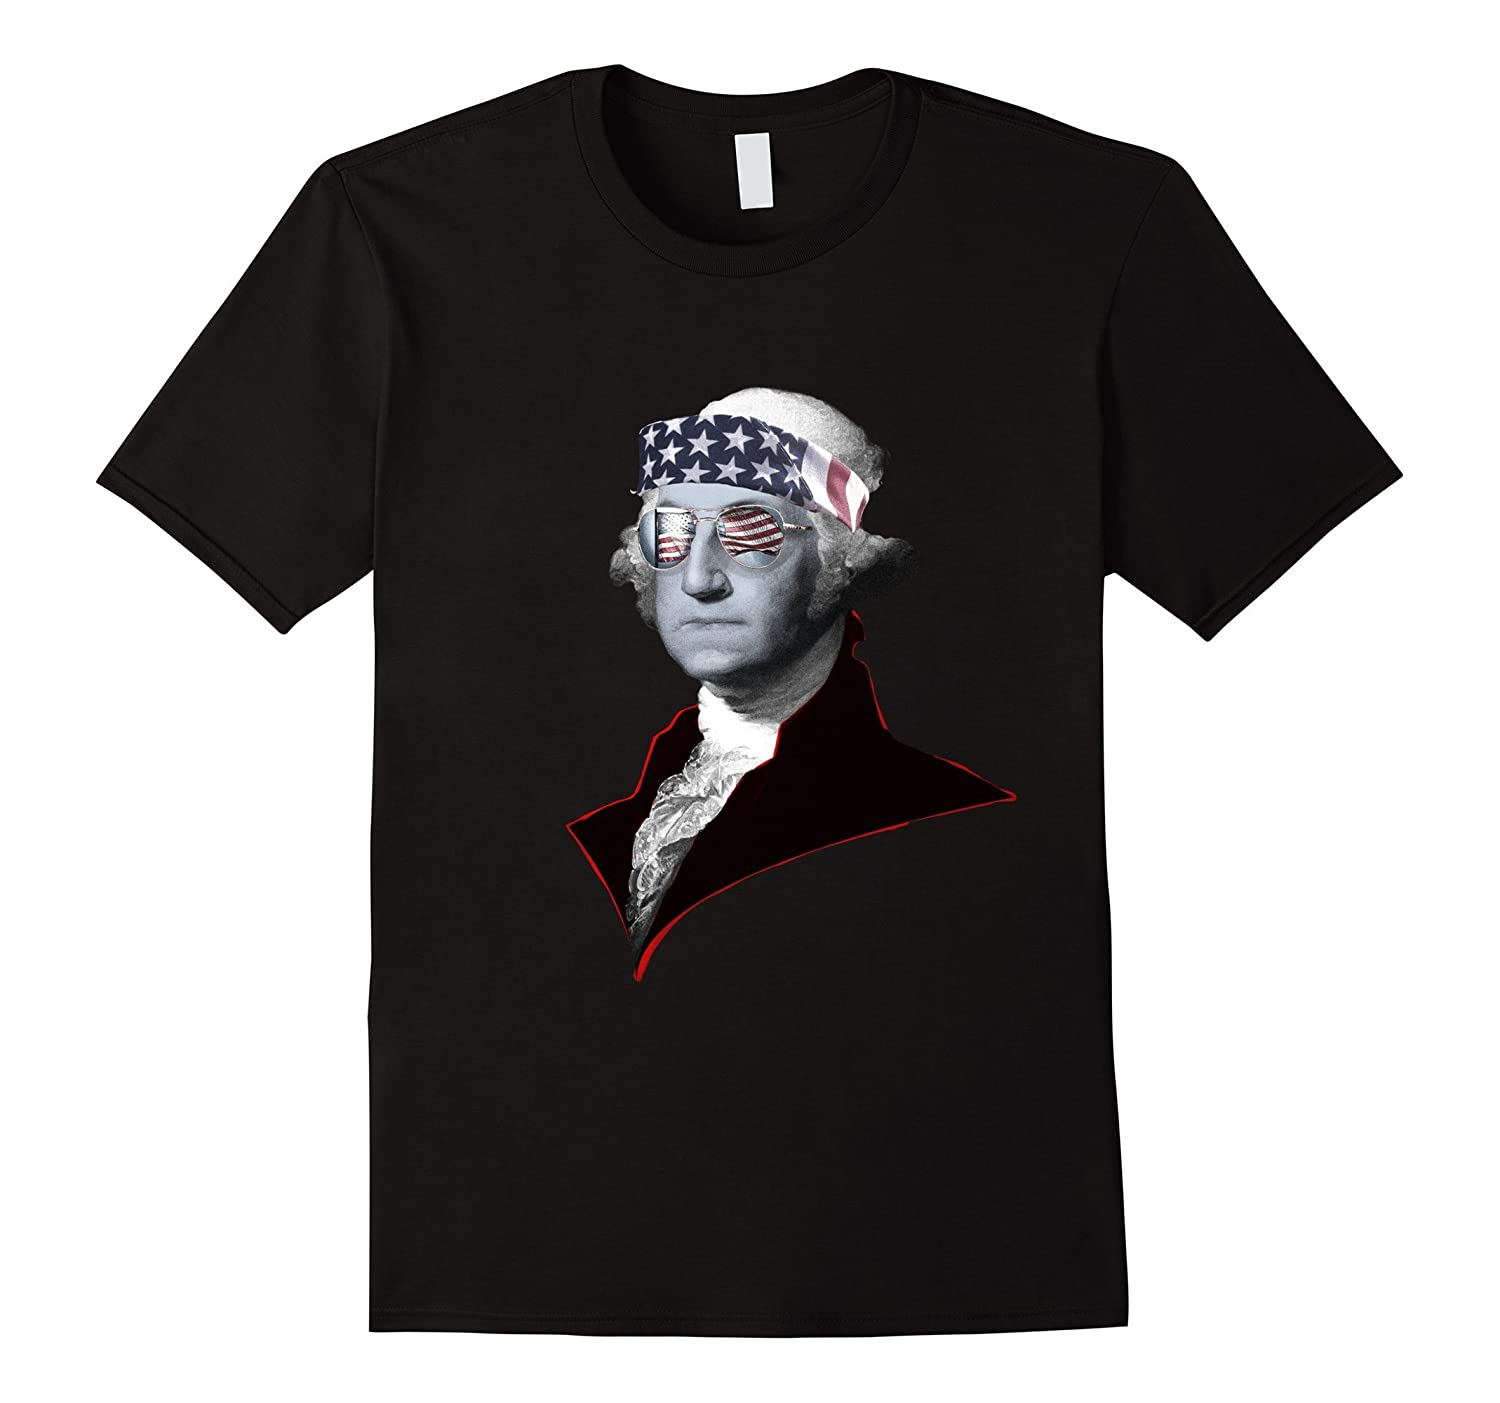 AMERICA - George Washington Freedom Tee Shirt by Enhaus-BN